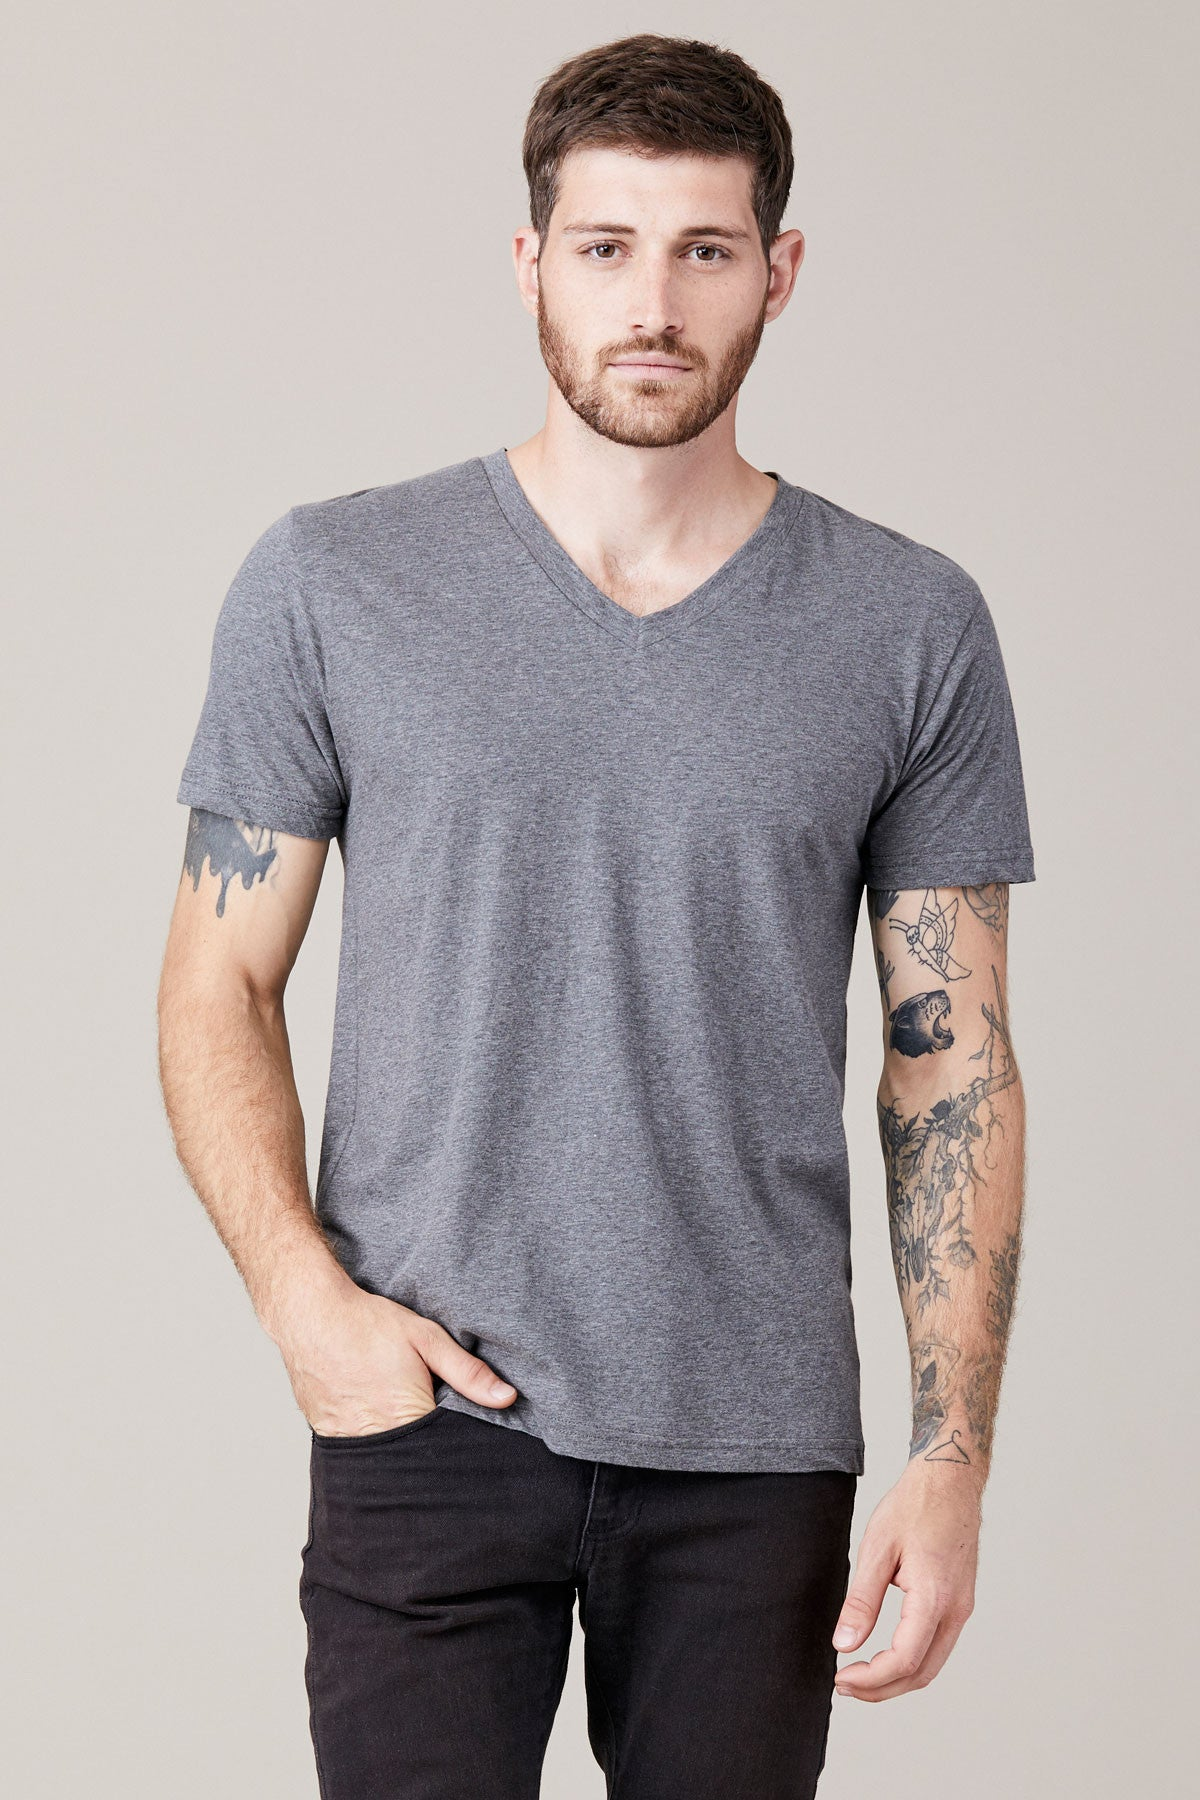 Men's Short Sleeve V Neck - Heather Grey